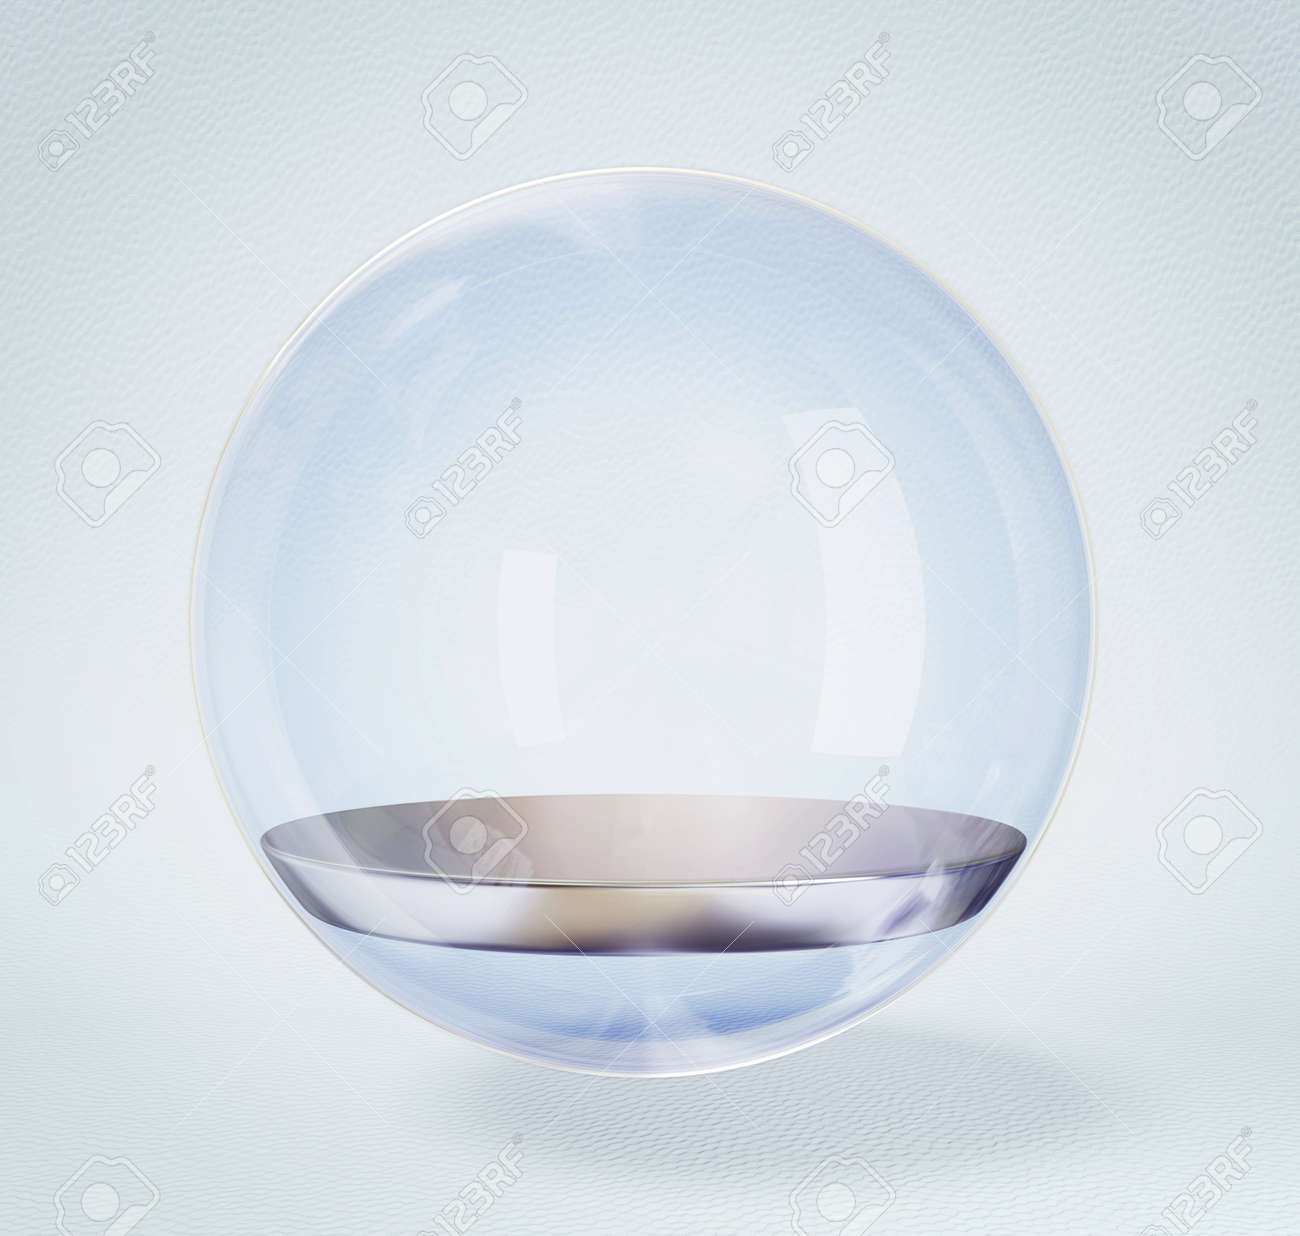 glass sphere isolated on a white background. Stock Photo - 13618617